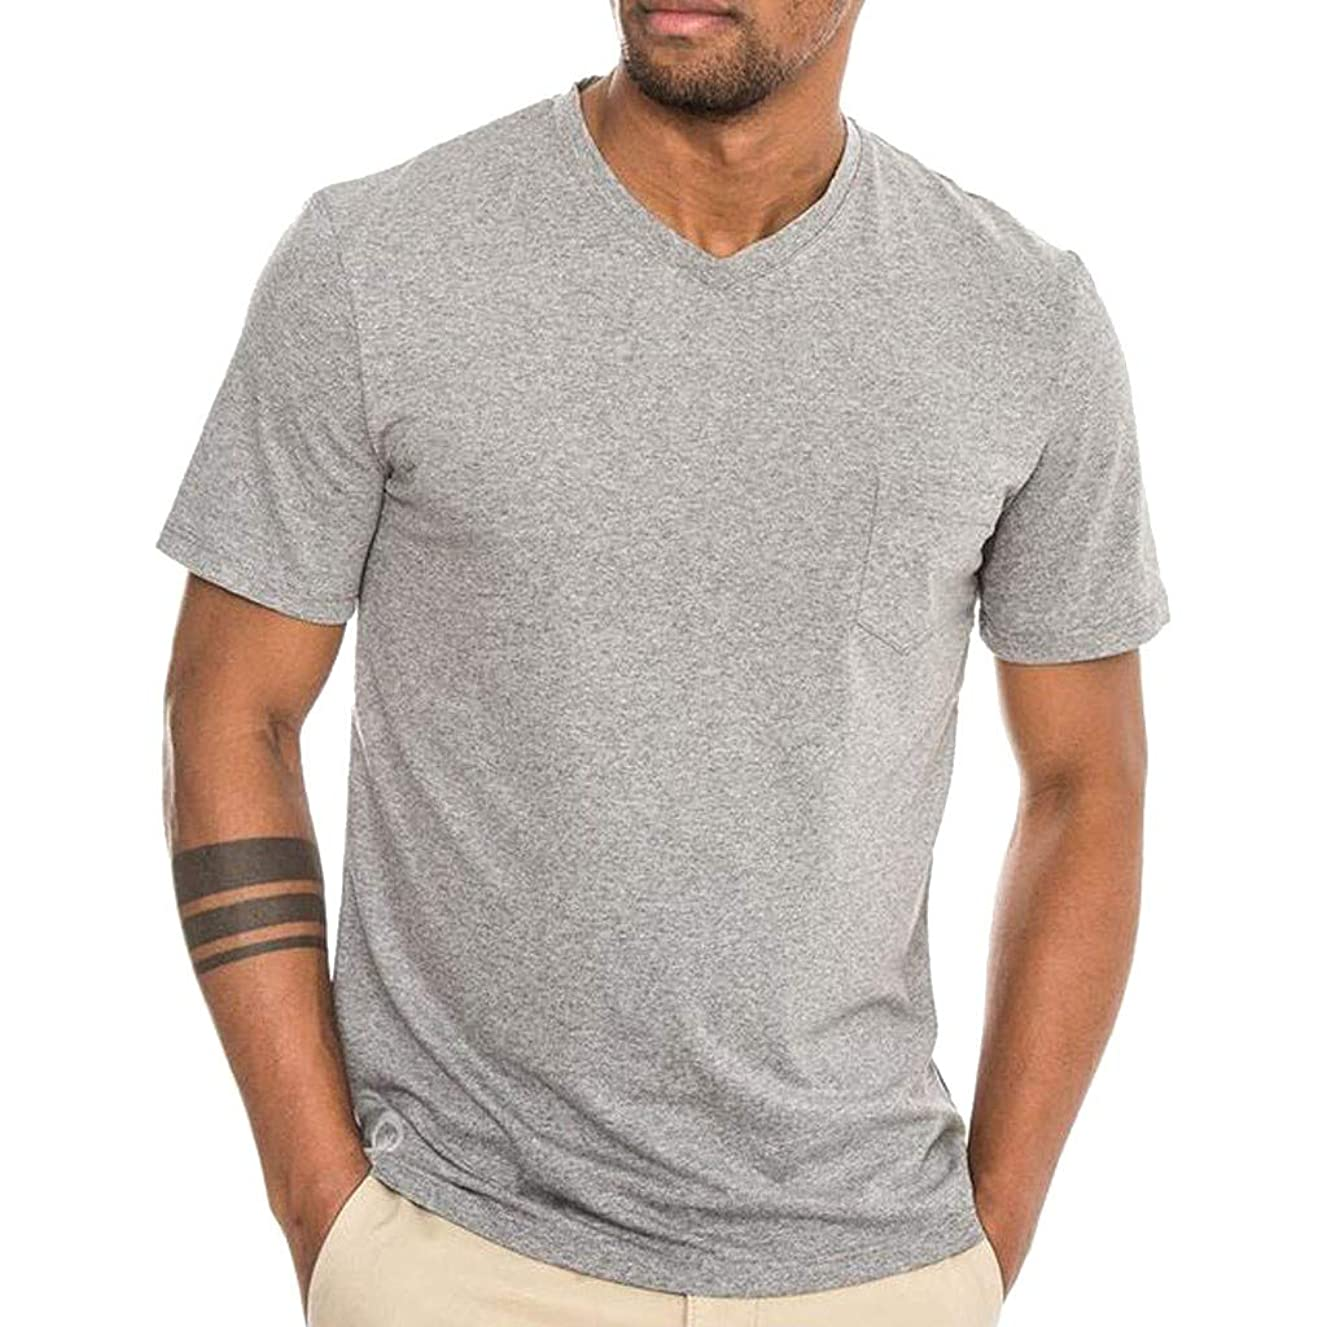 Men's Summer New Style Simple Pocket Plain Short Sleeve Fashion Comfortable Top